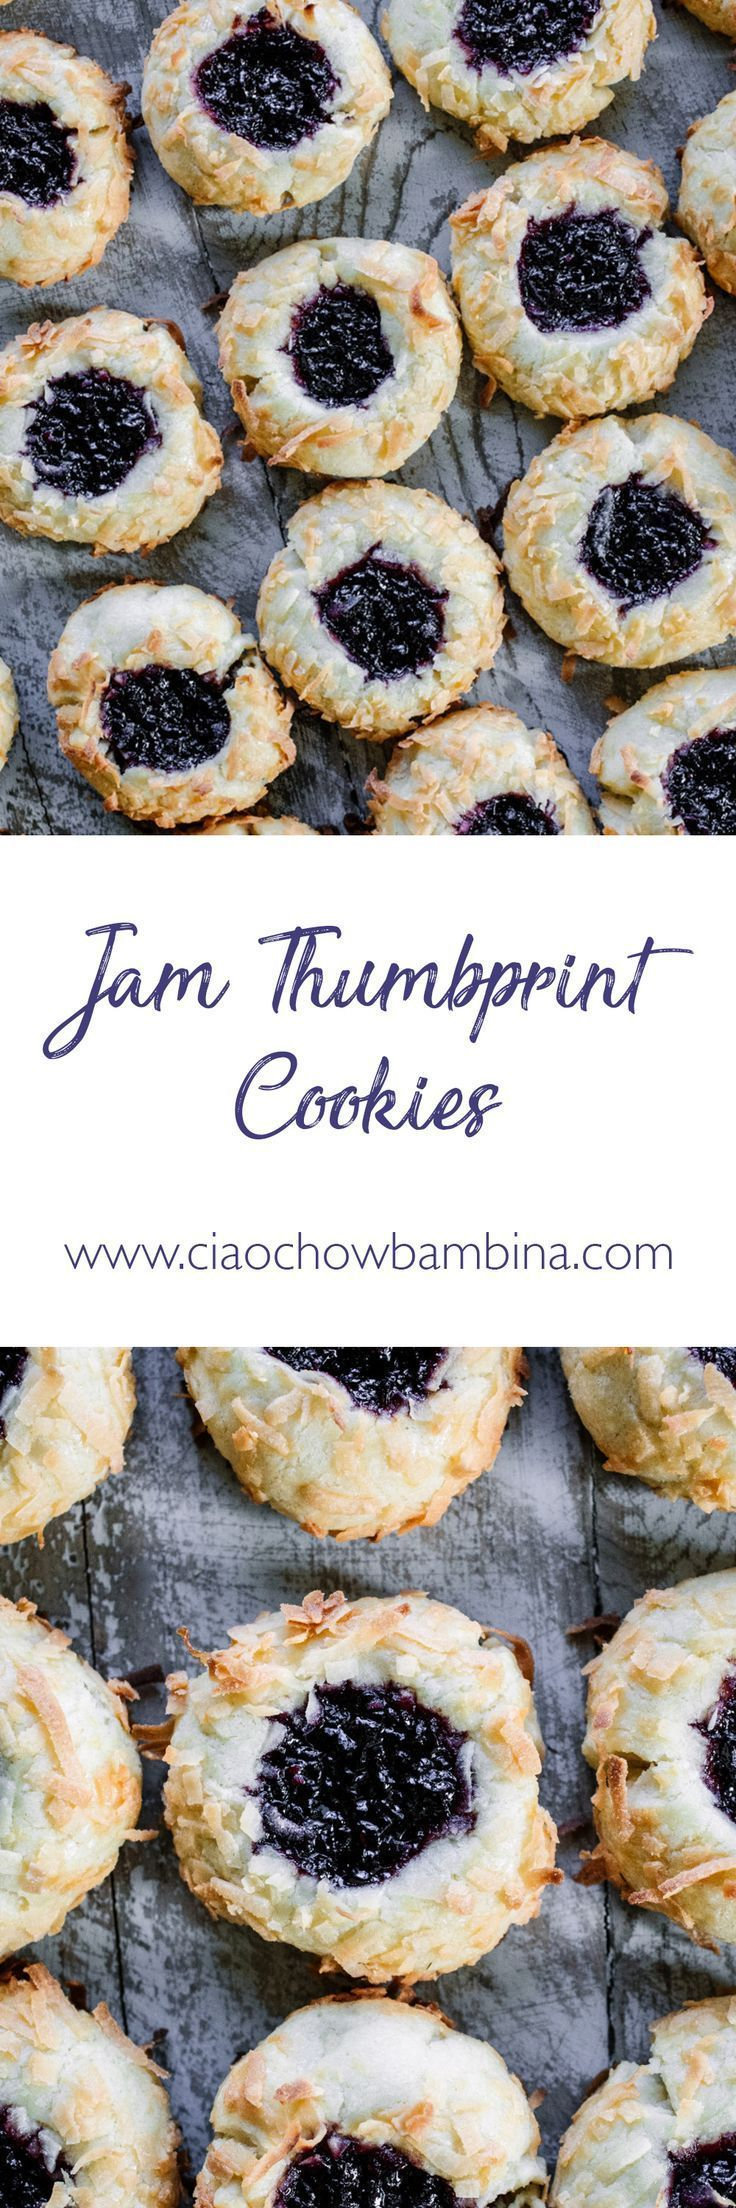 Jam Thumbprint Cookies Who doesnt love a good butter cookie Am I right A rich shortbread These Jam Thumbprint Cookies deliver the decadence of a shortbread with the sweet...